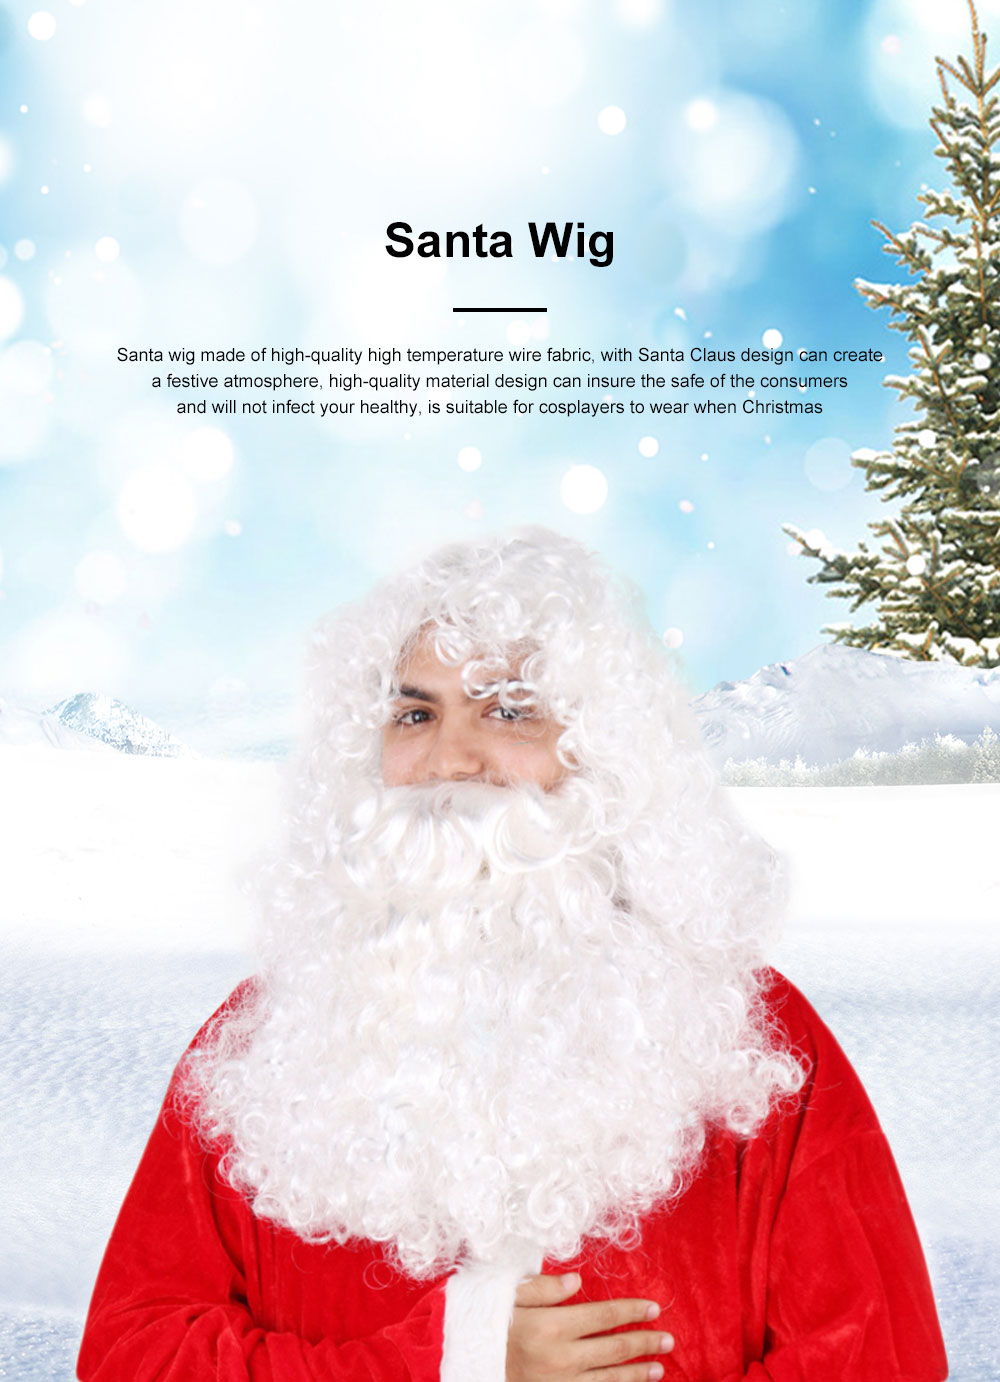 Santa Wig for Cosplayer, Button Mesh Healthy and Safety Long Curly White Hair High Temperature Wire Bearded Wig 0